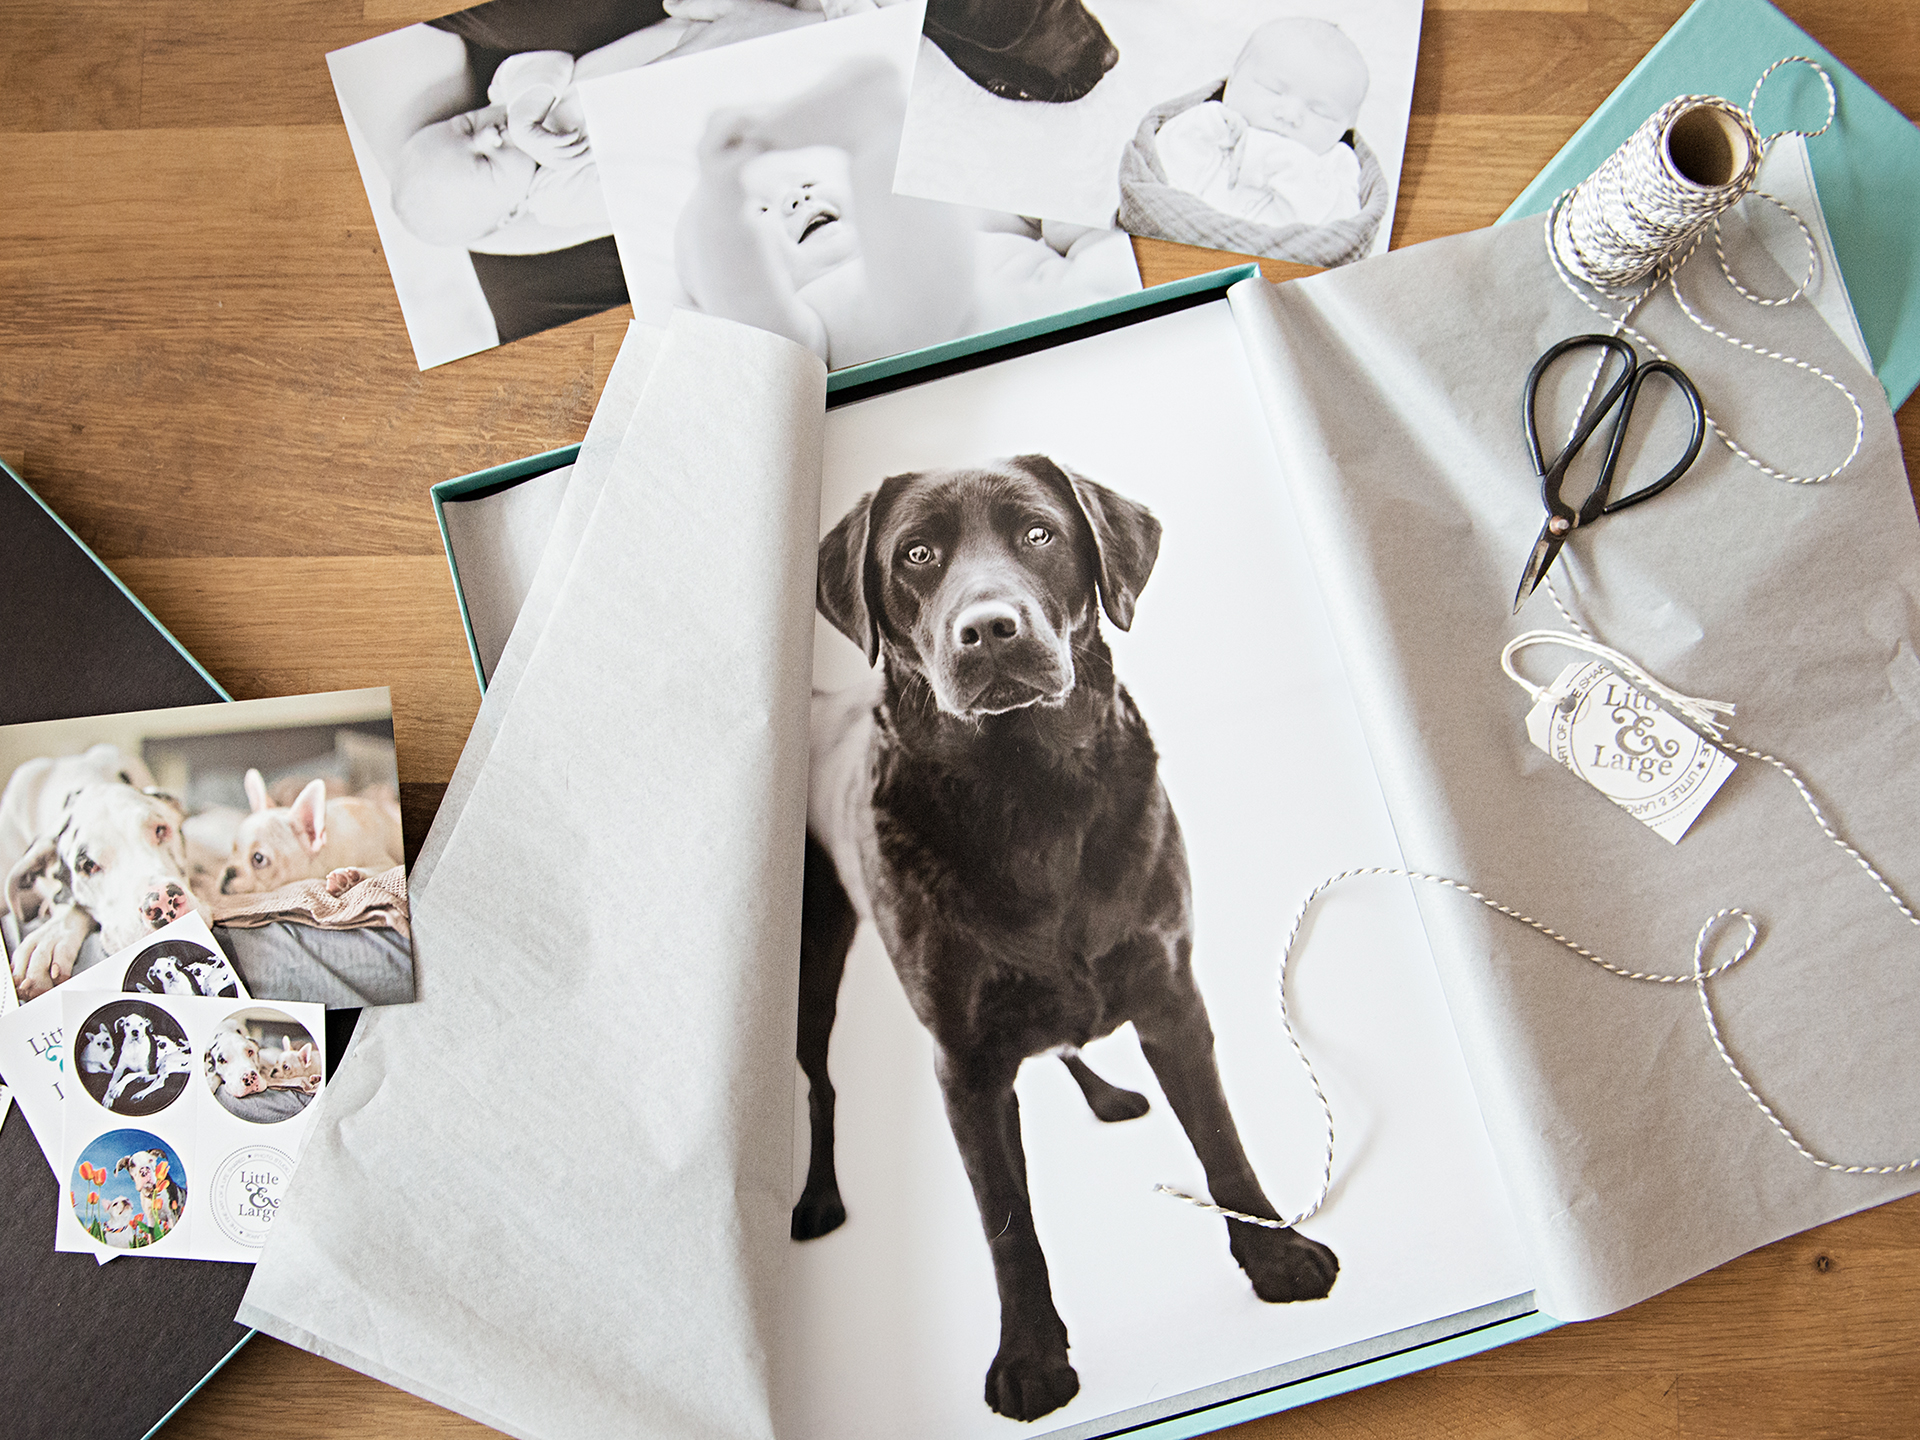 Pet Photography products, prints and packaging